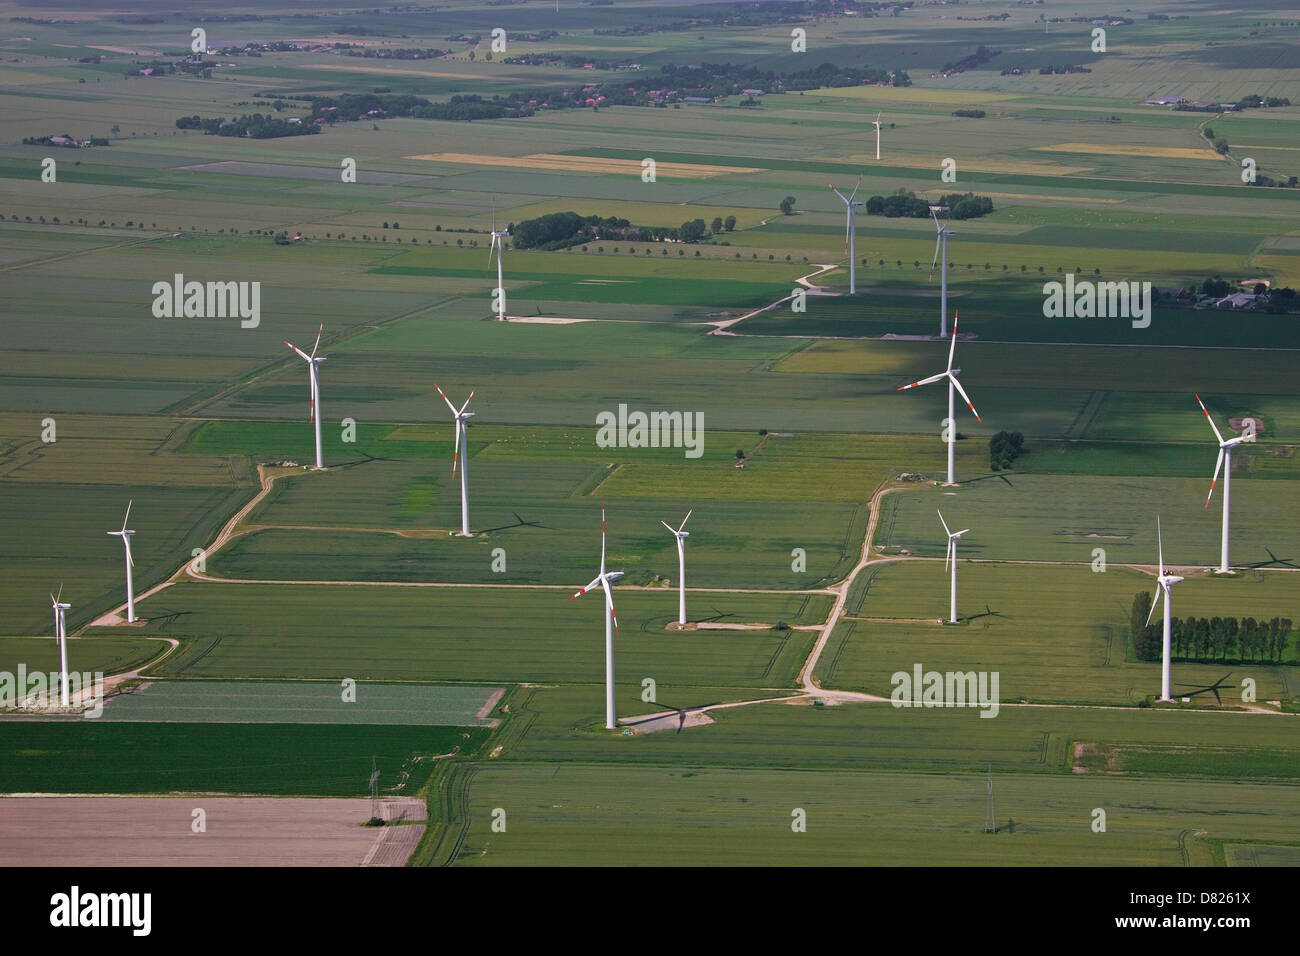 Aerial view over windturbines at wind farm - Stock Image